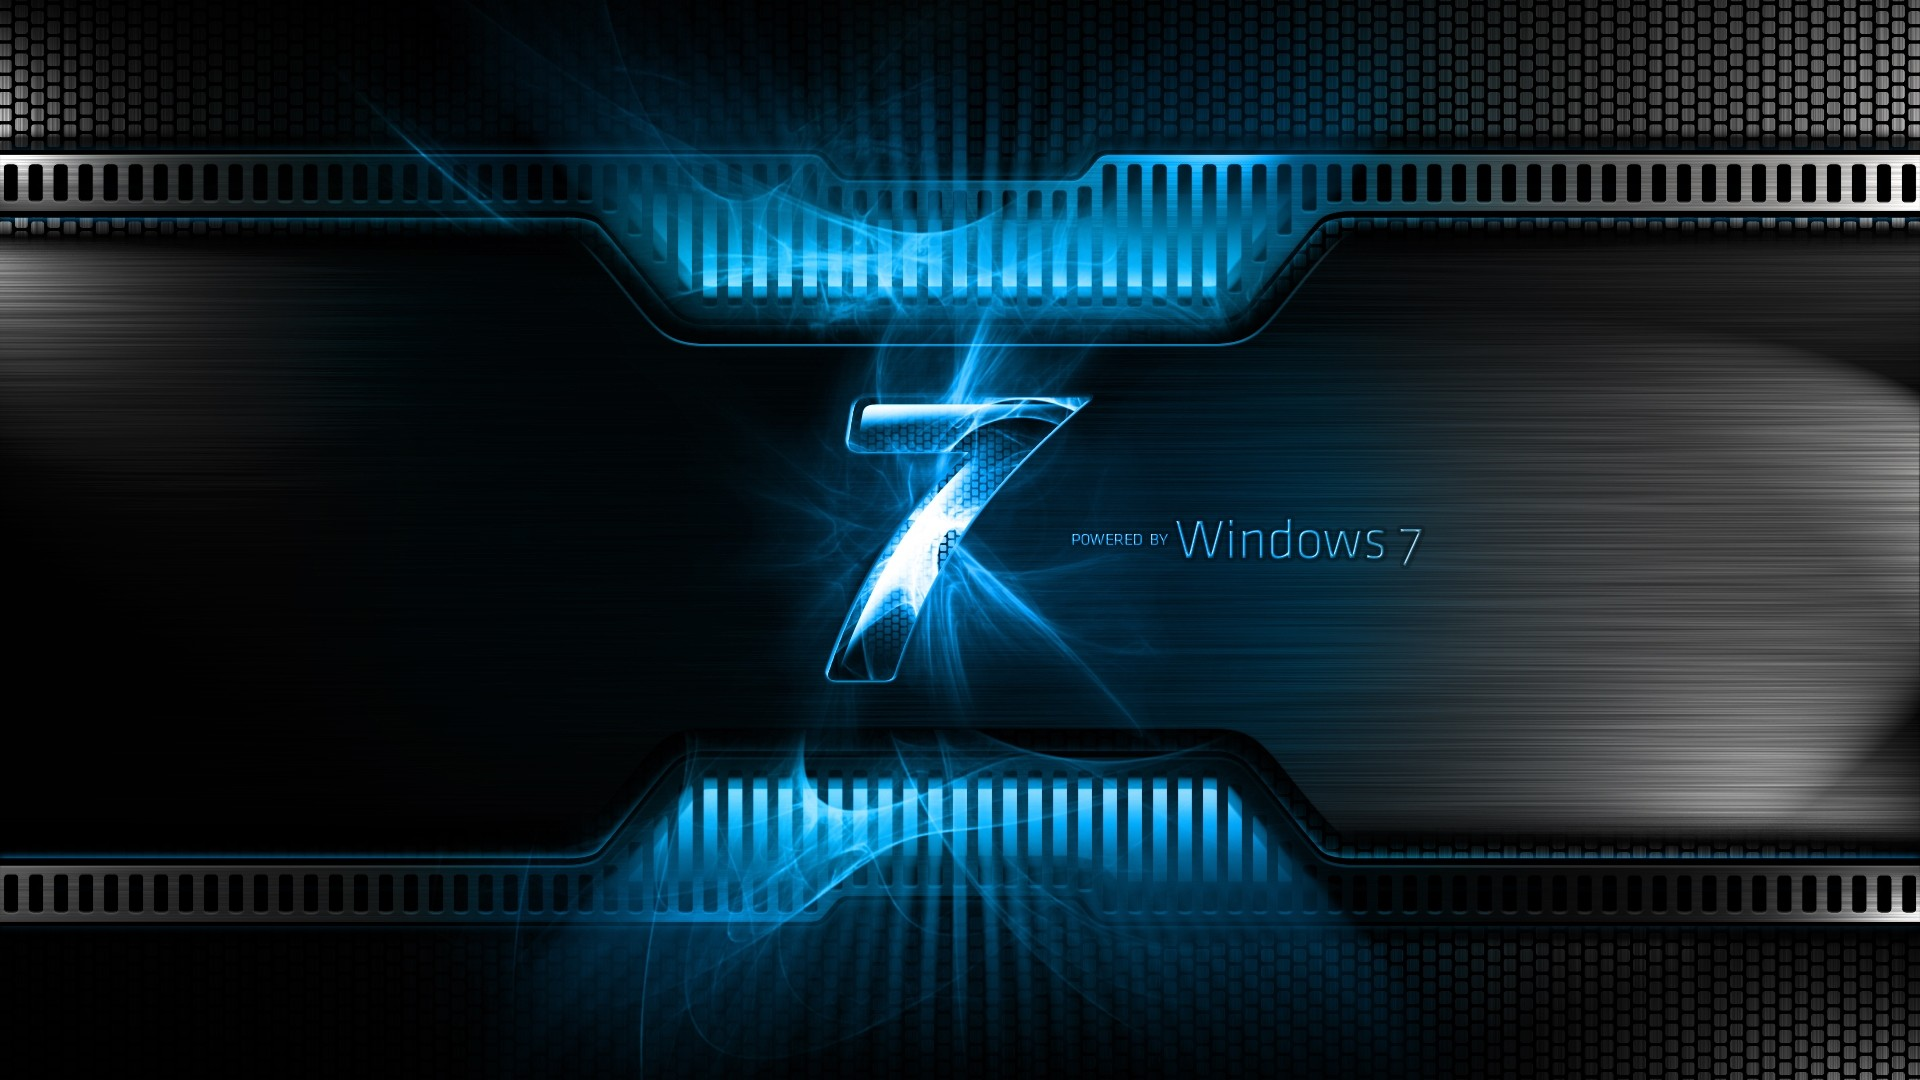 1920x1080 Preview wallpaper windows 7, blue, black, logo, light